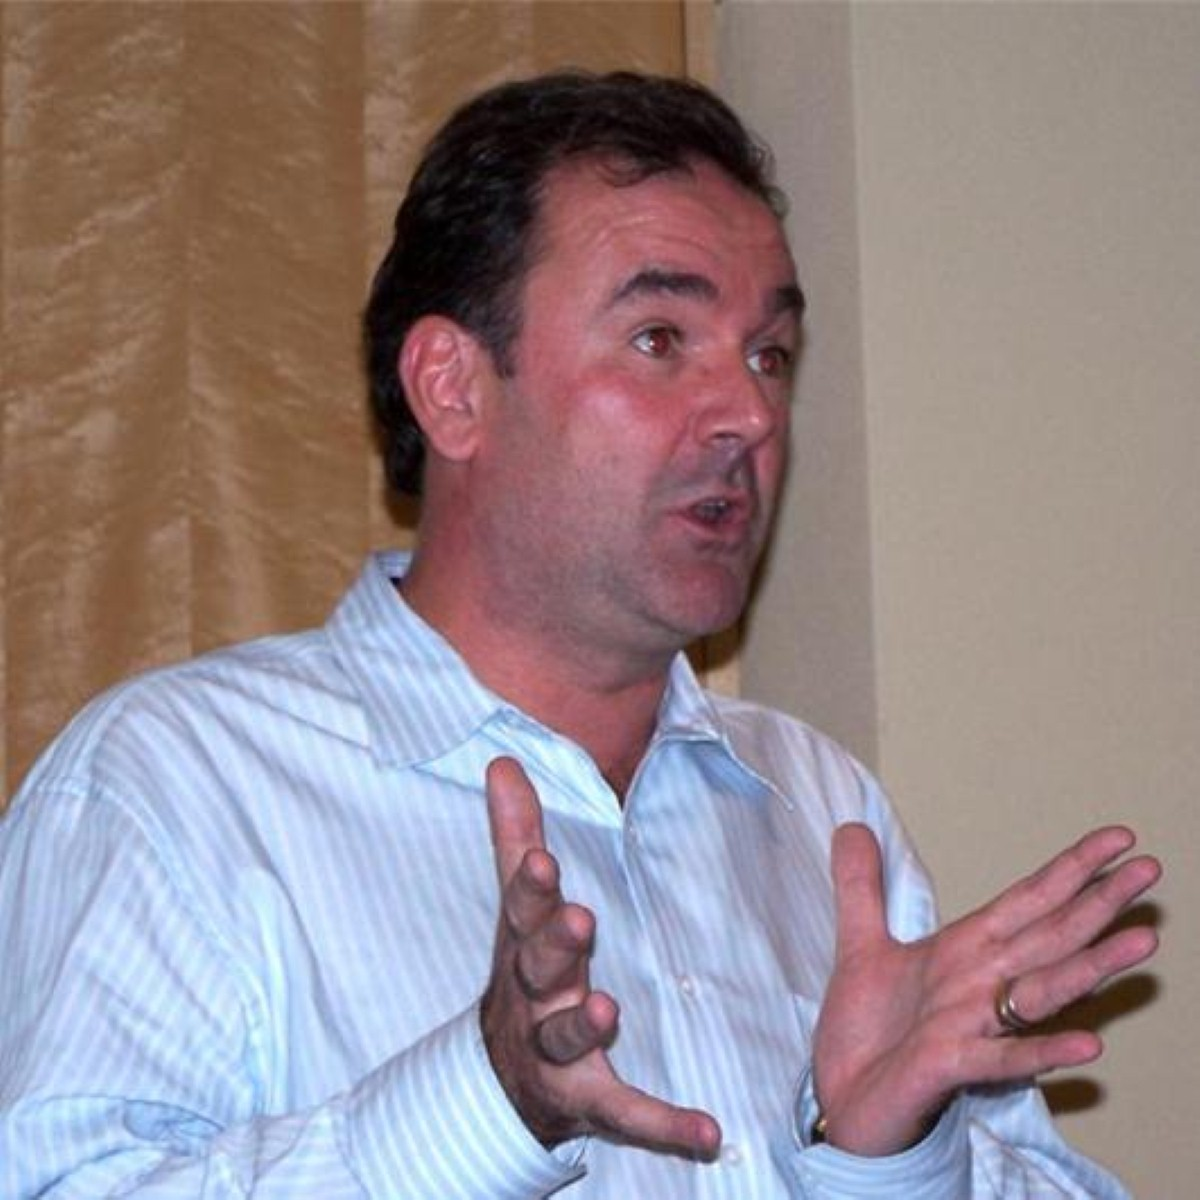 Jon Cruddas is a major voice on the left of the party